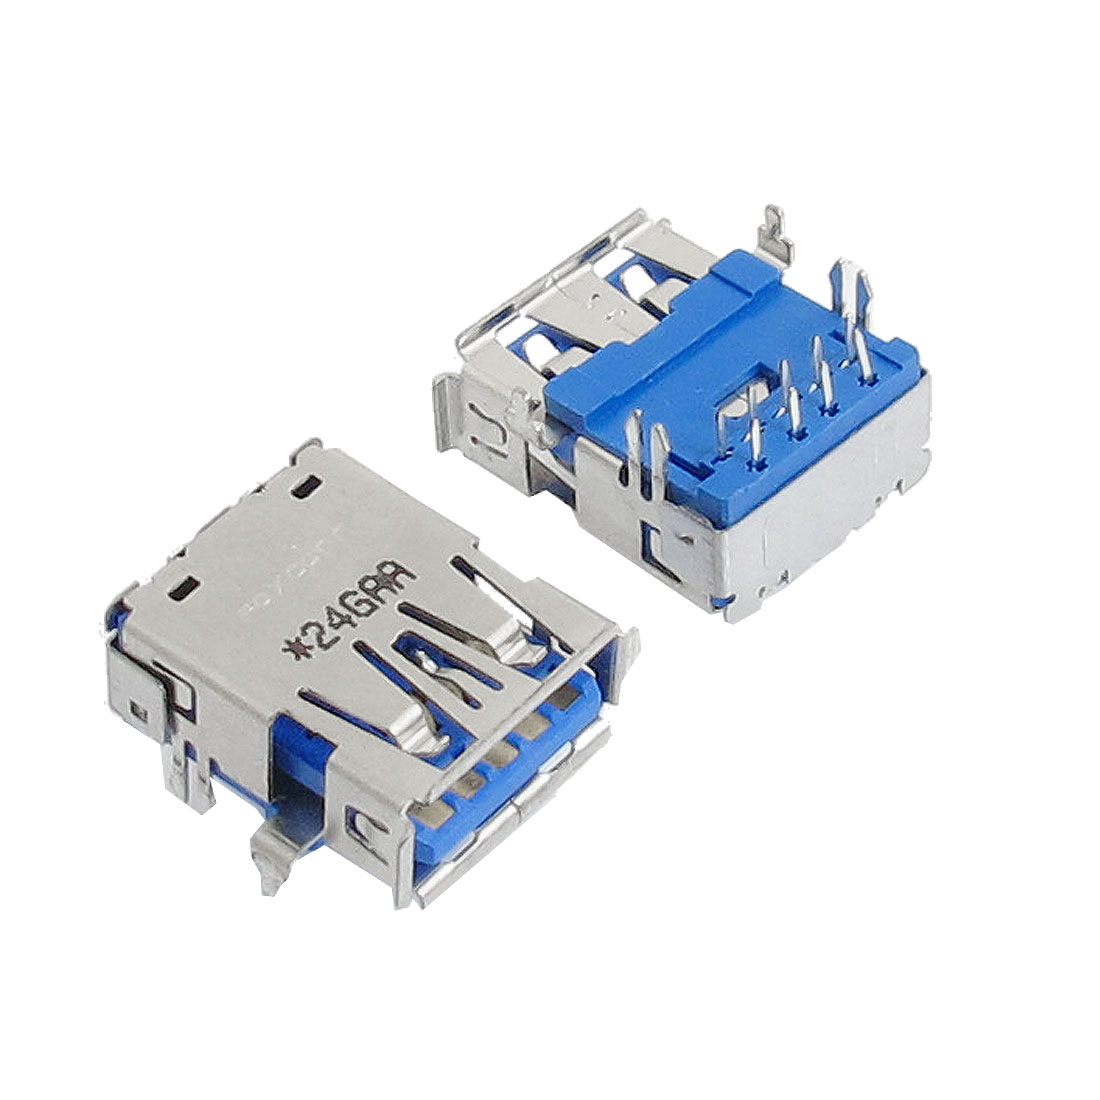 2 Pcs USB 3.0 Jack Connectors Type A Female 90 Degree